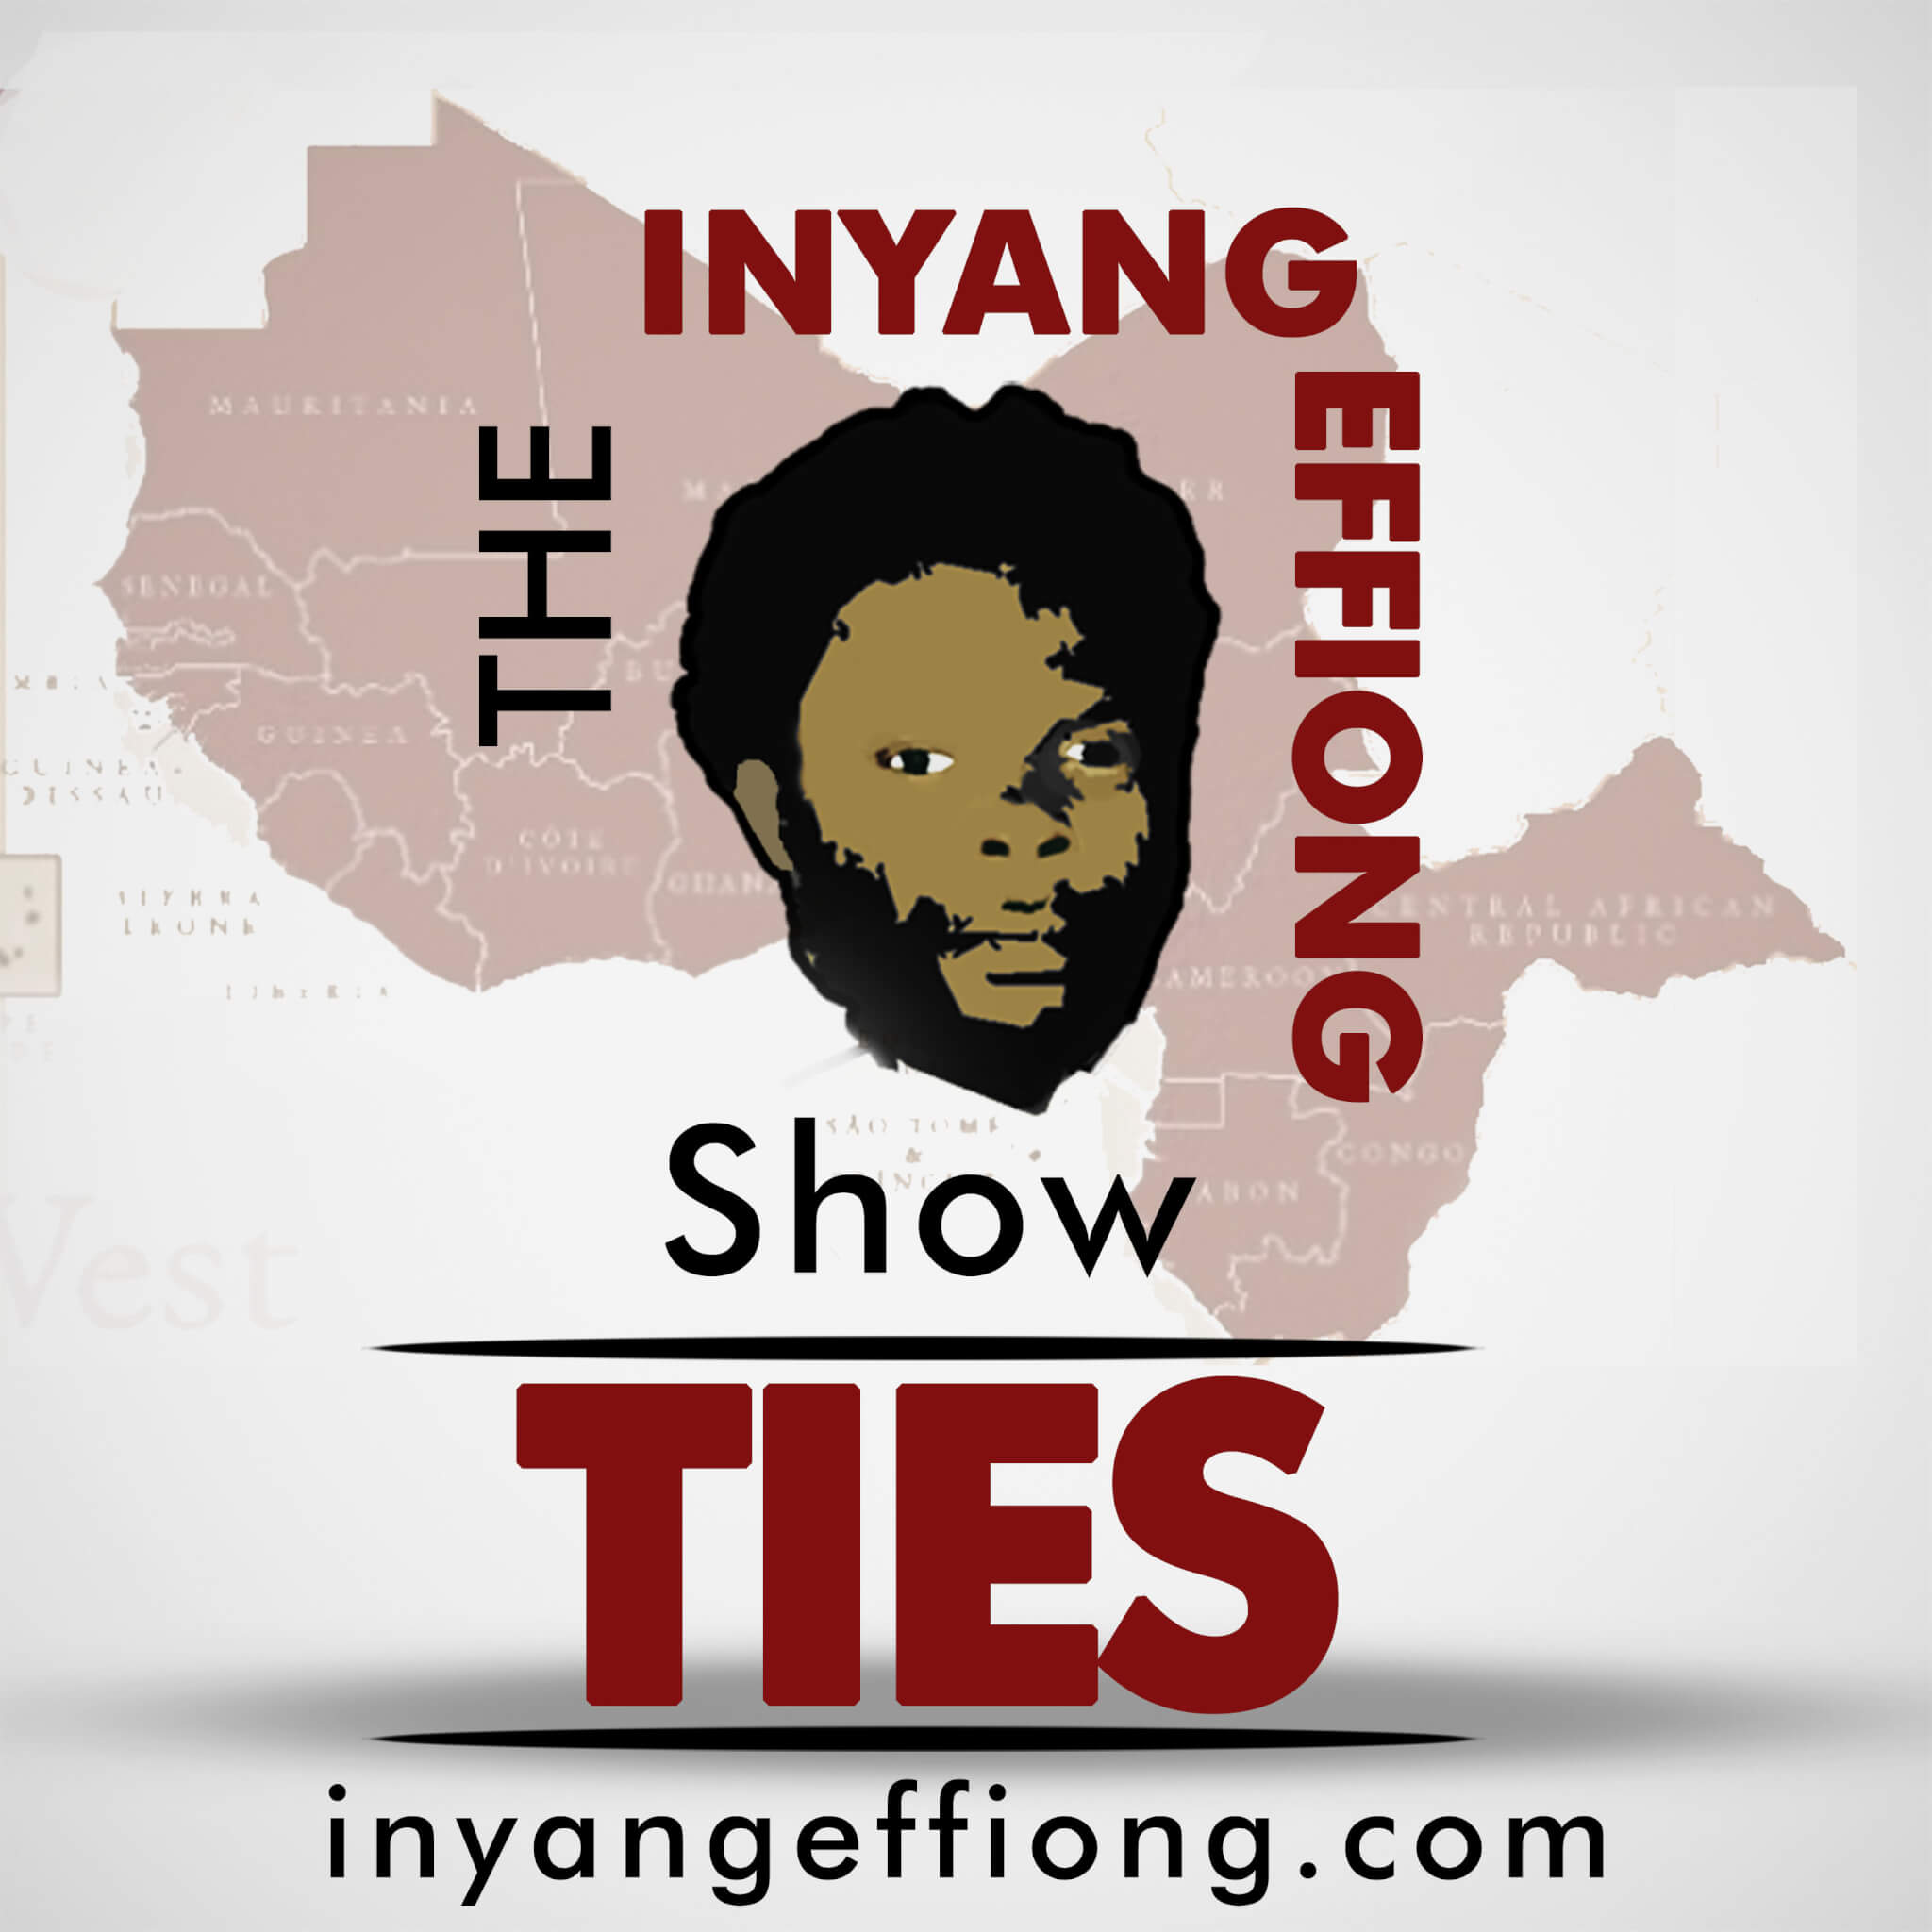 The InyangEffiong Show